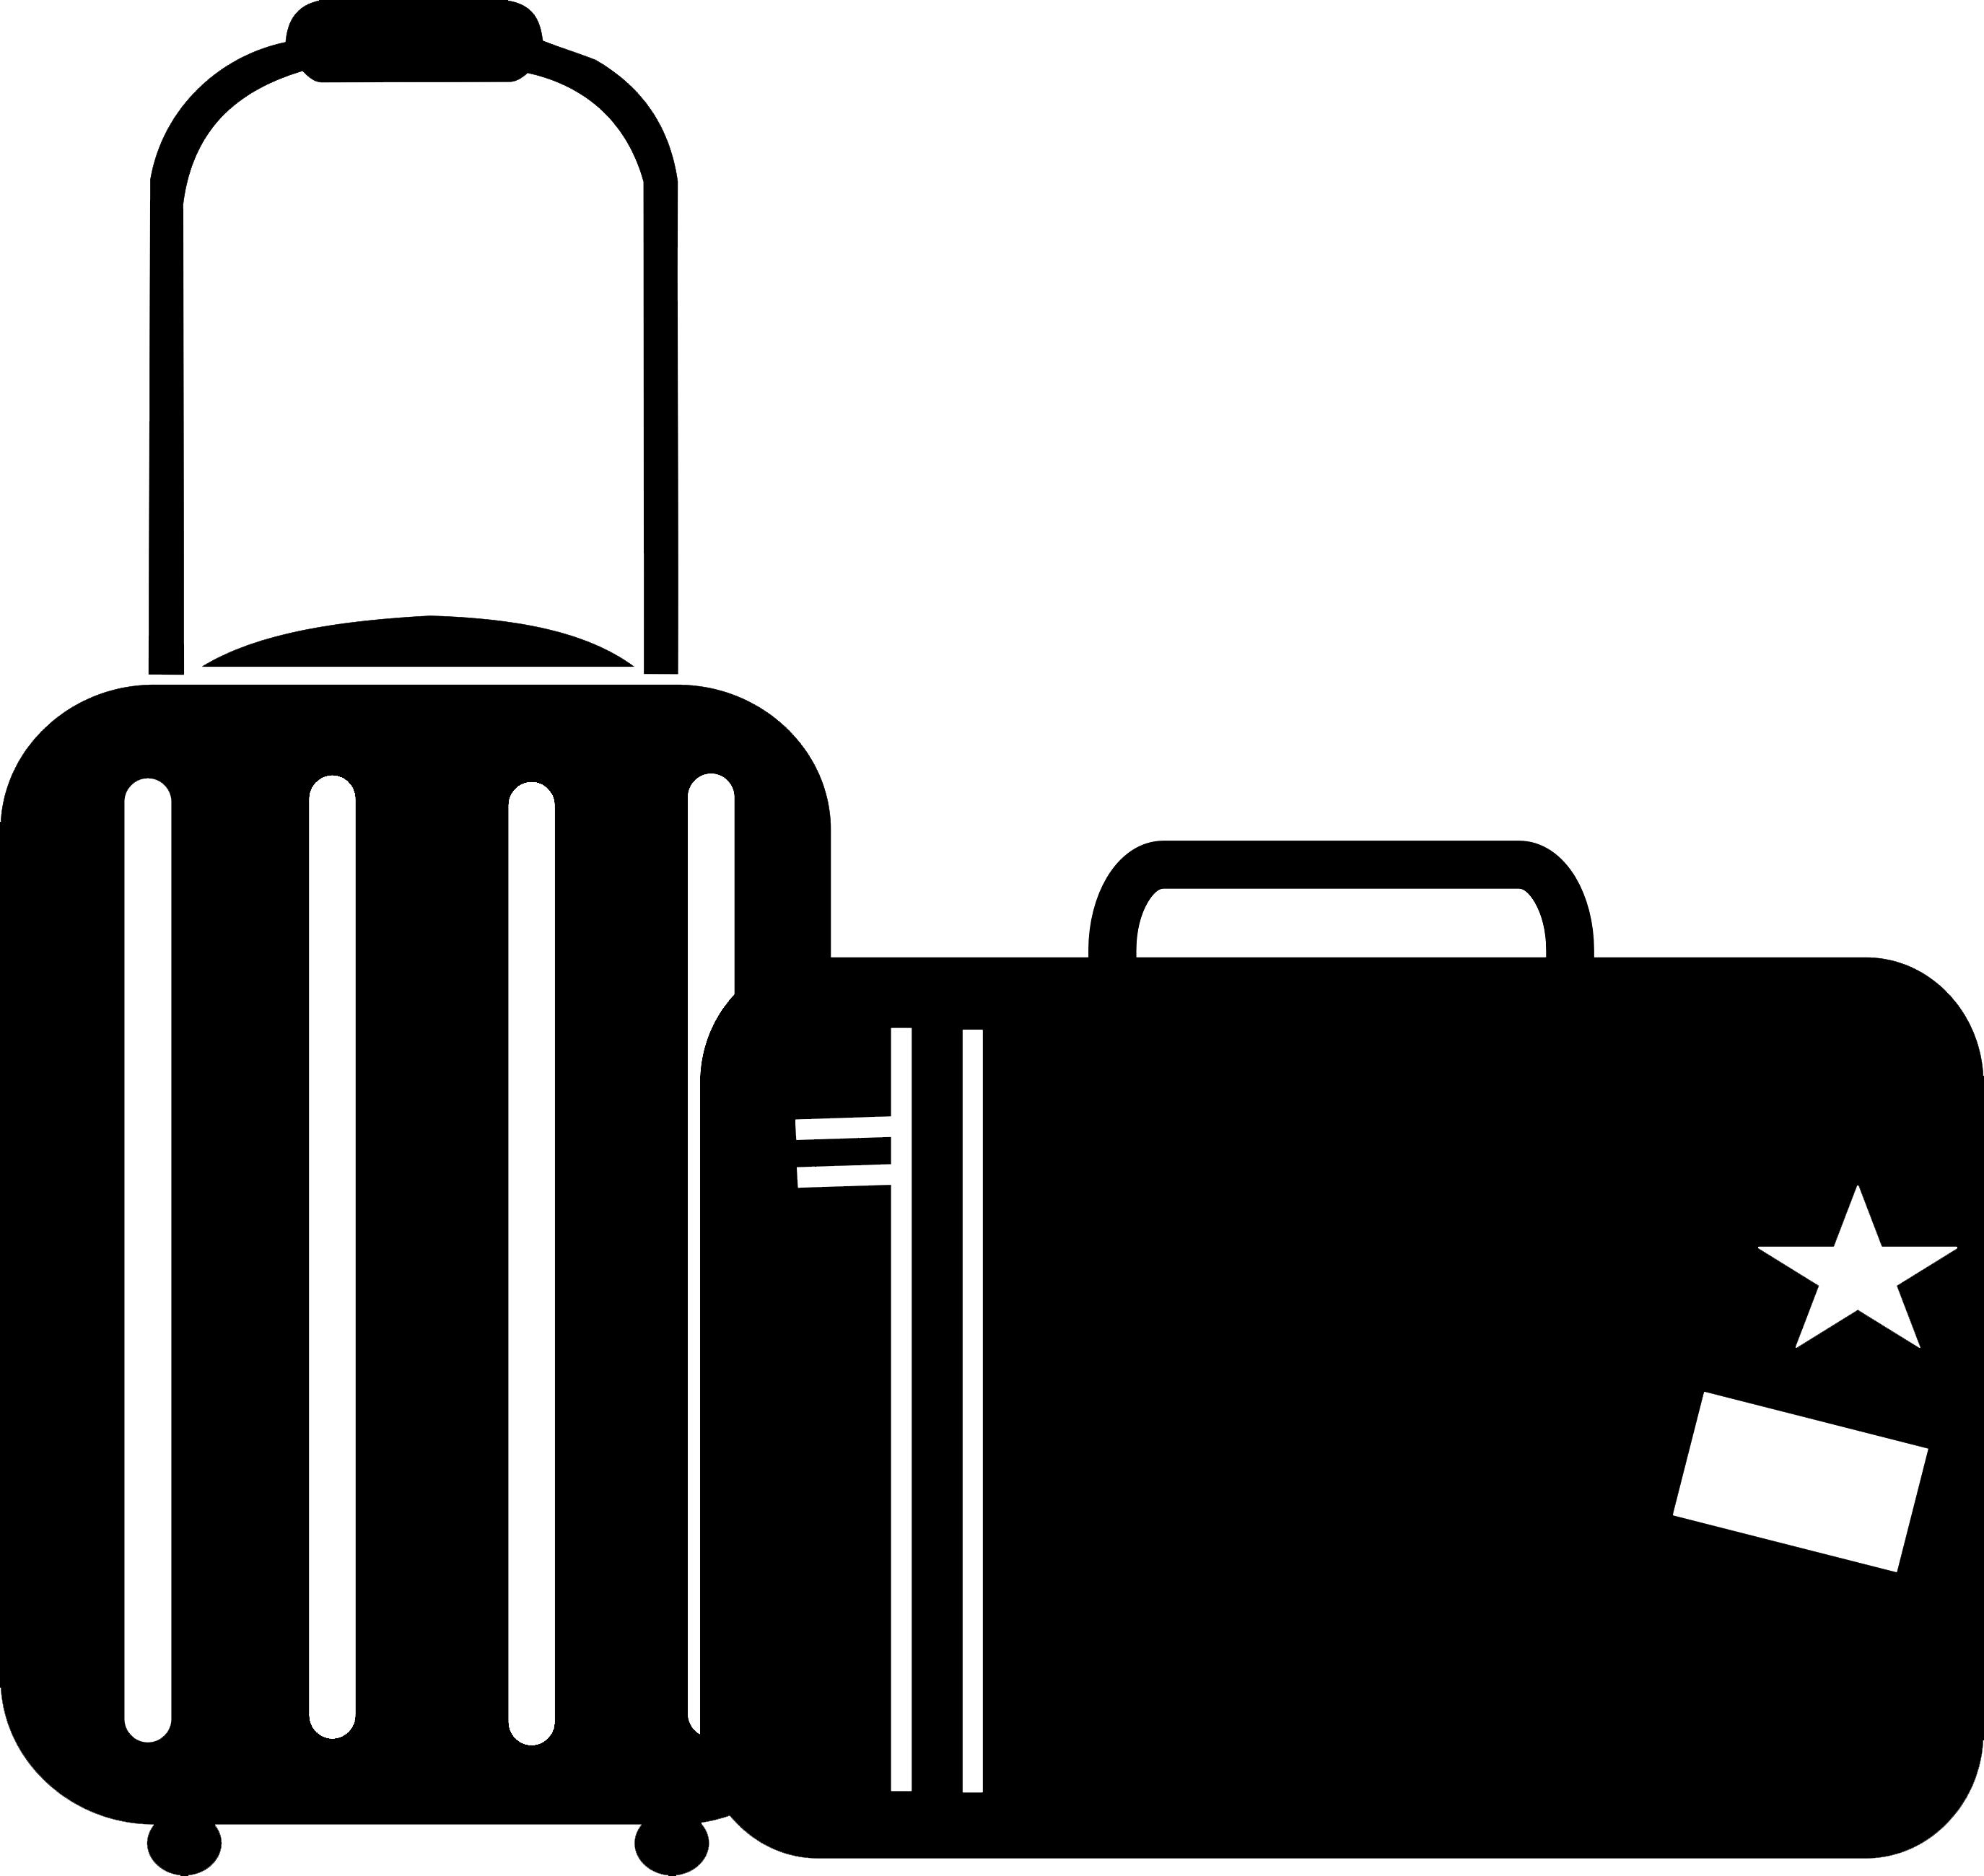 Luggage clipart black and white.  collection of travel